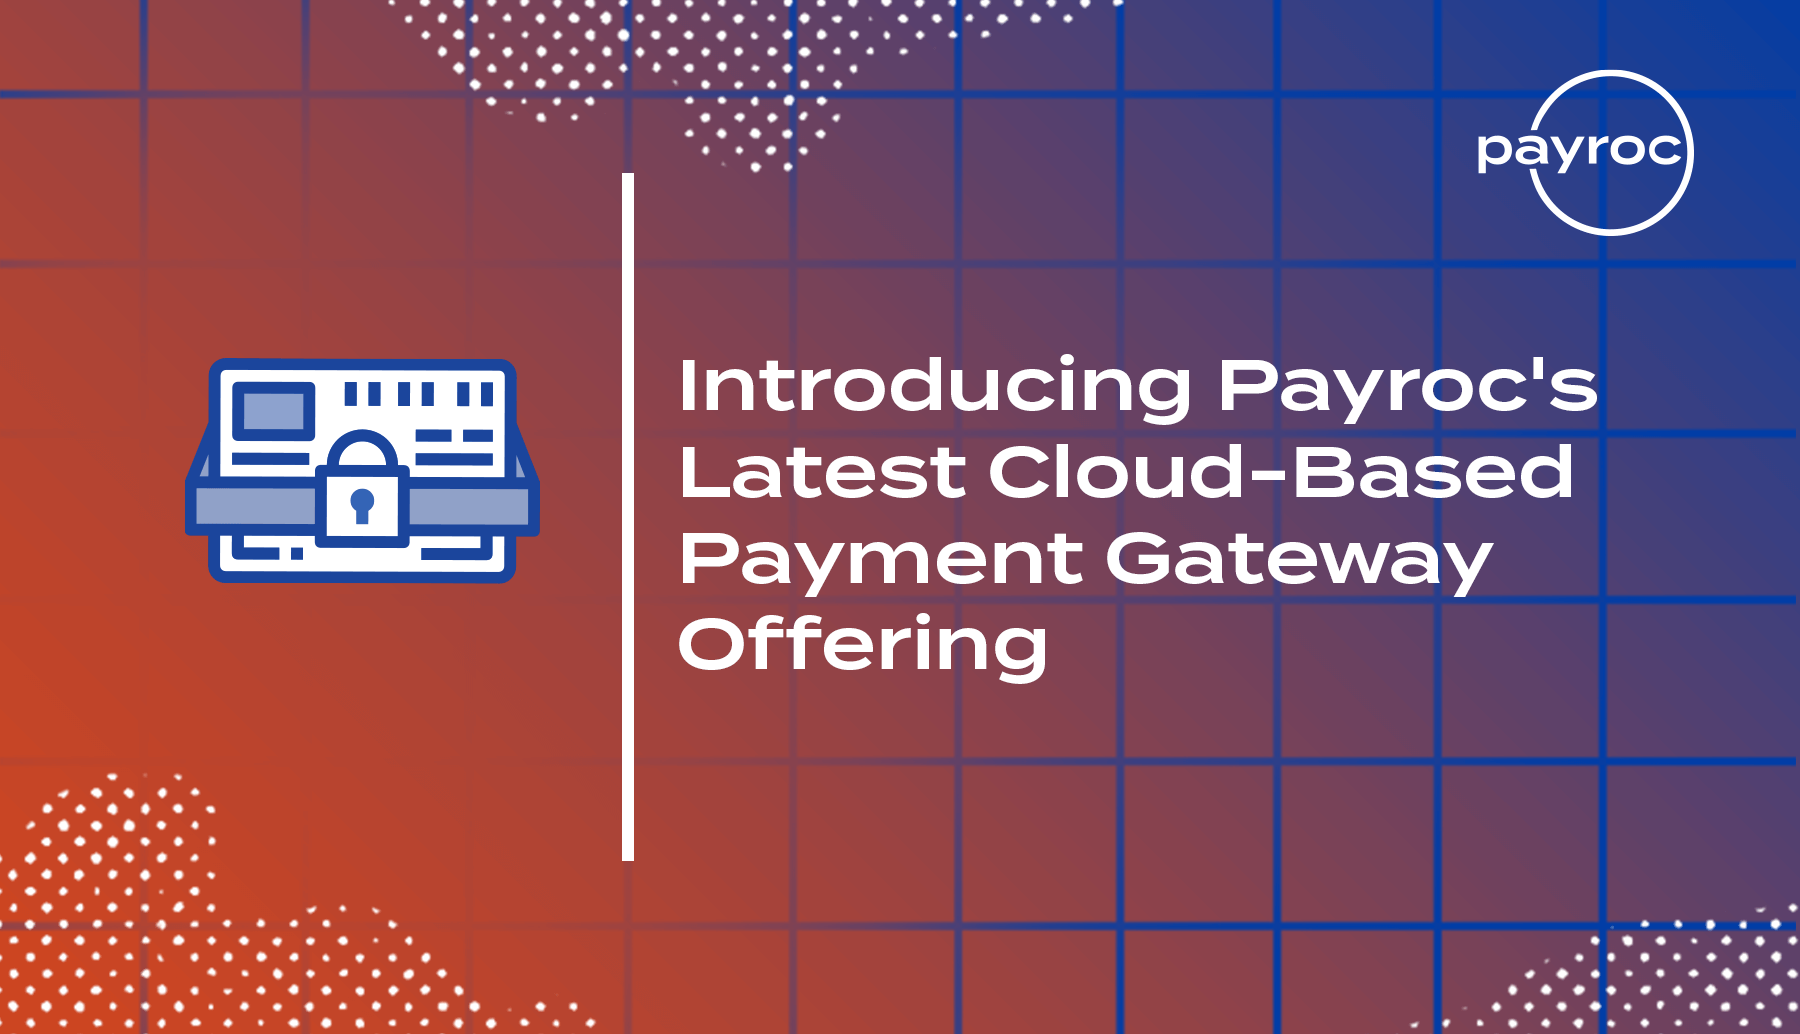 Introducing Payroc Latest Cloud-Based Payment Gateway Offering